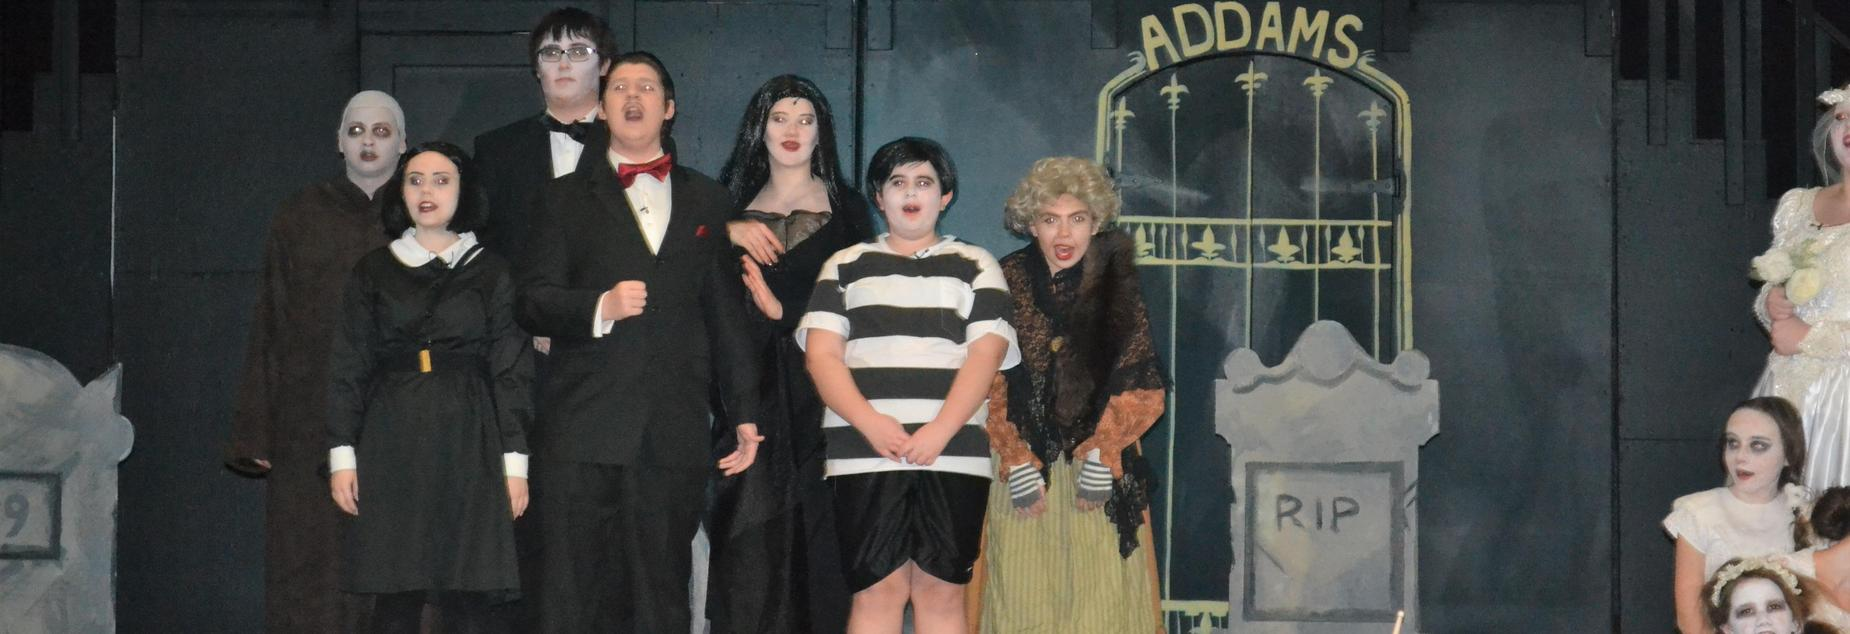 Addams Family on stage, 2018